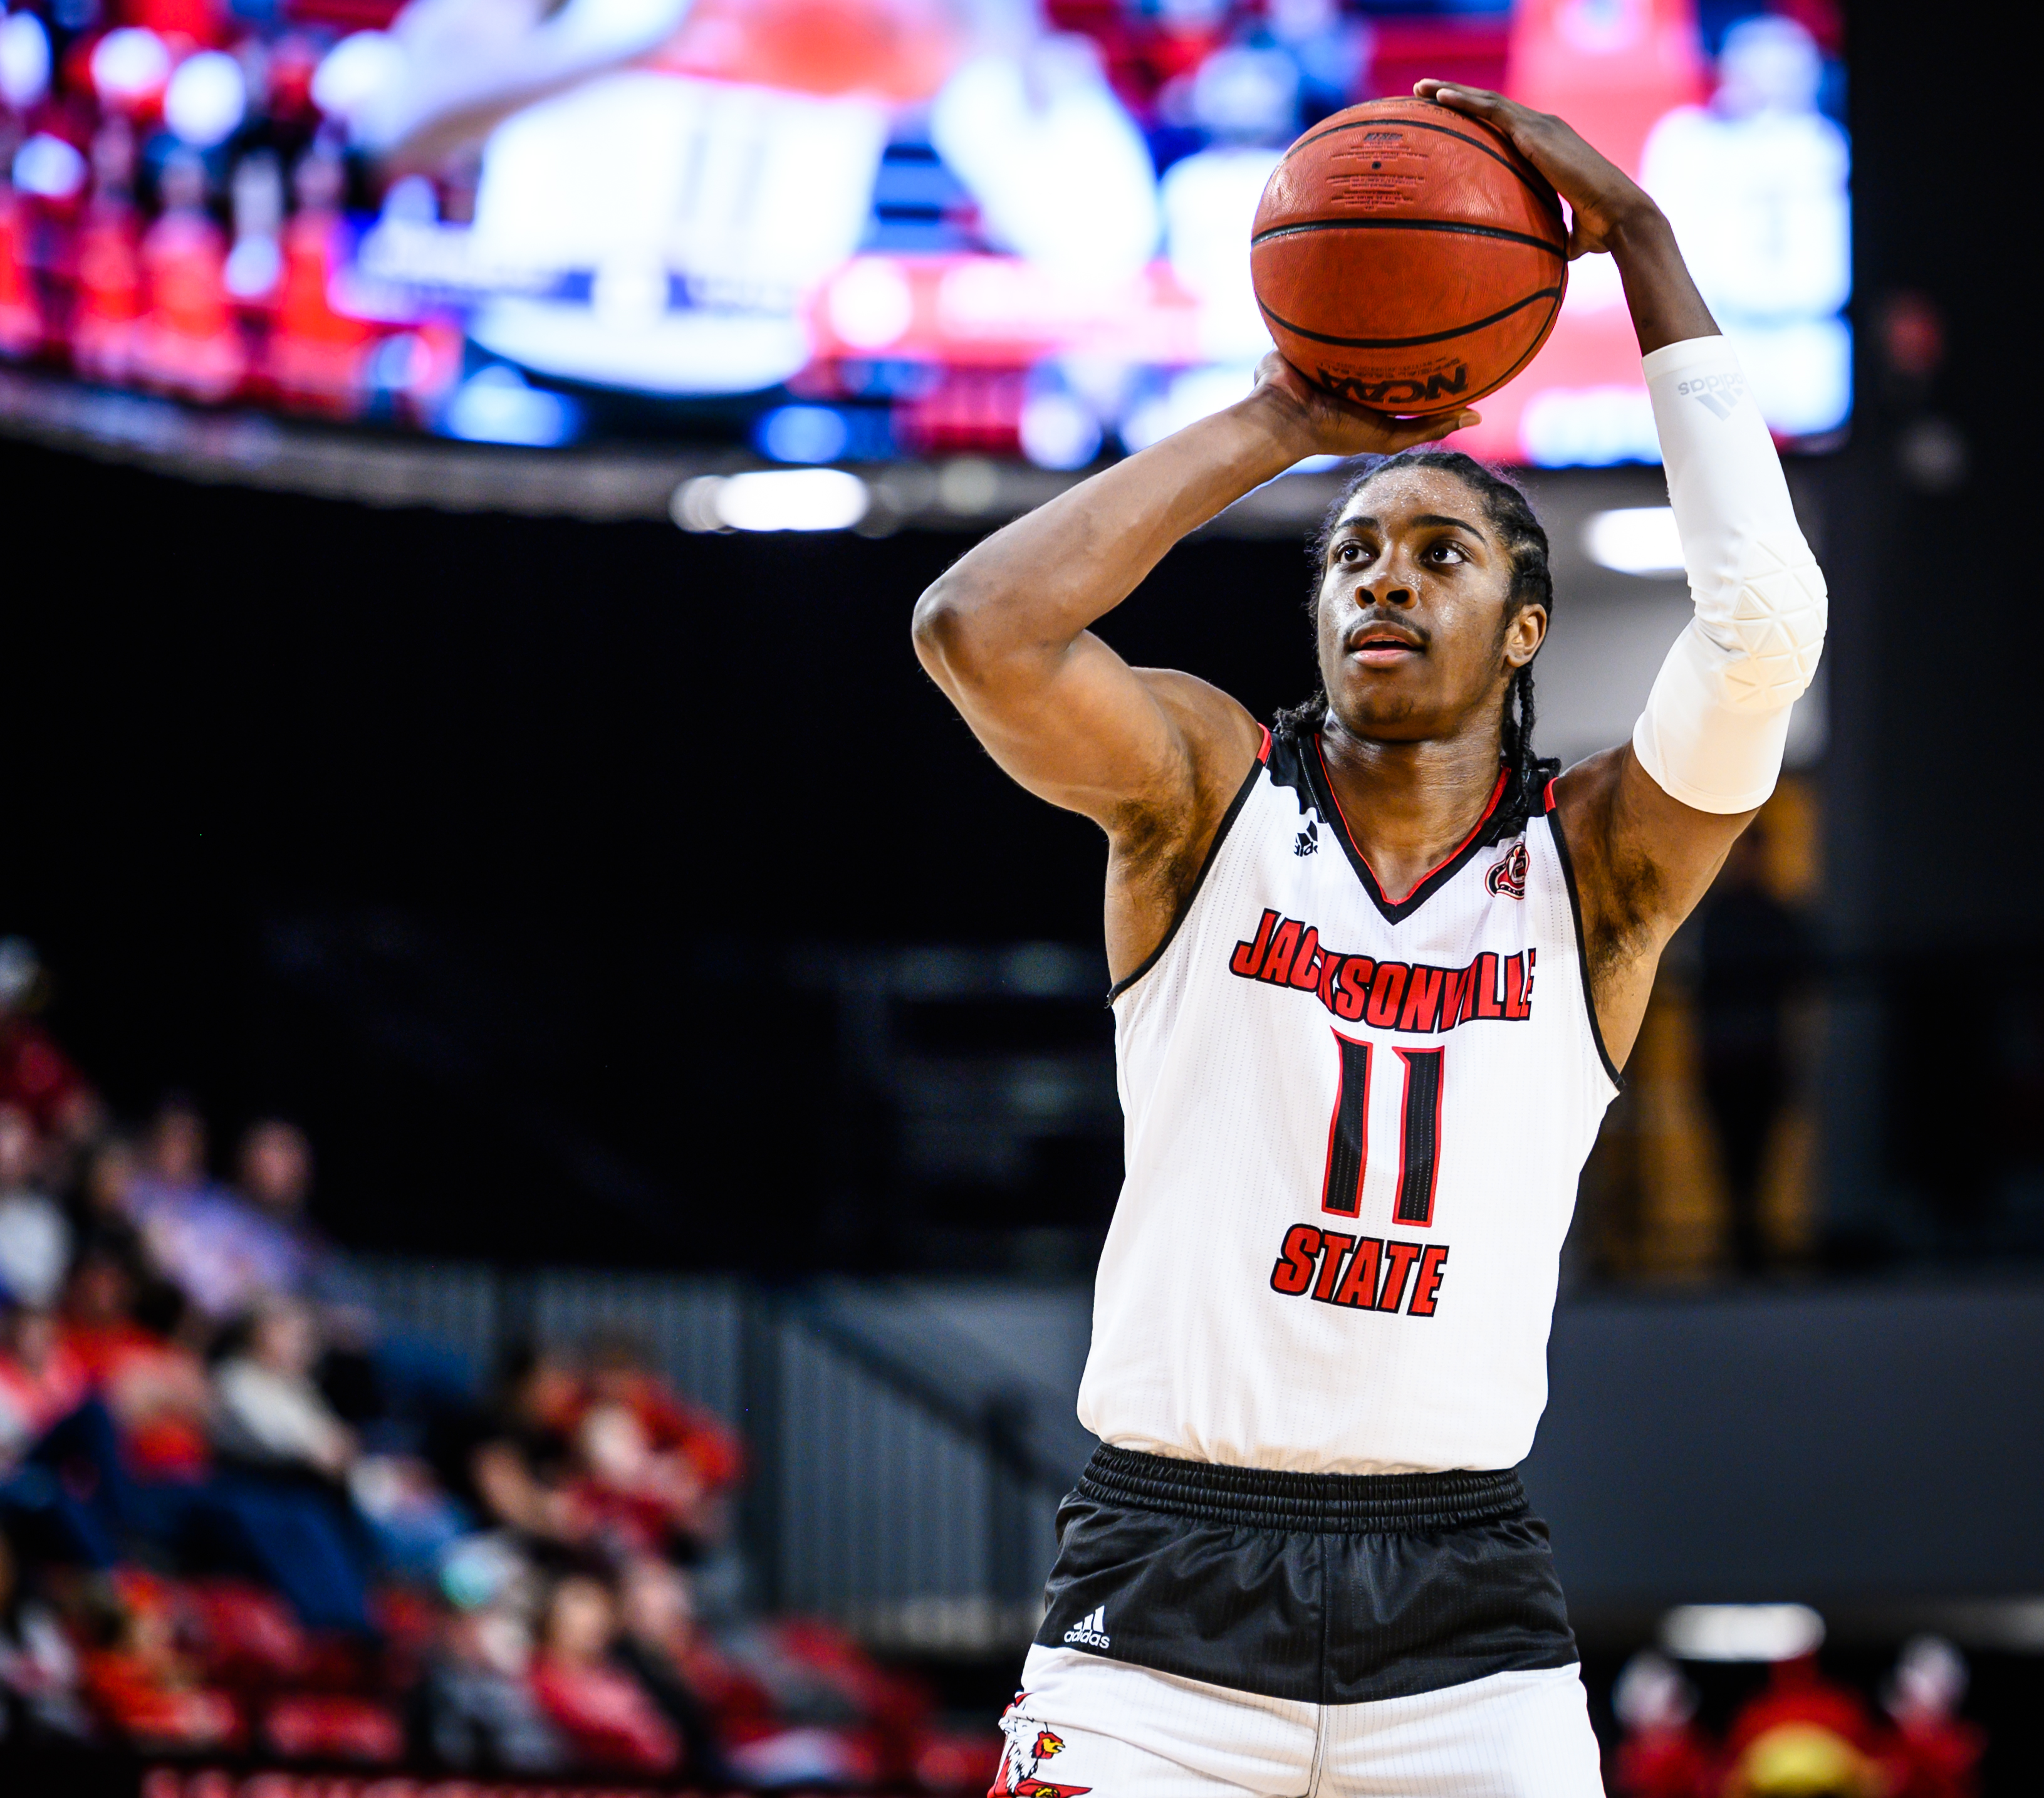 Kayne Henry shoots the ball in a game earlier in the season against Morehead State. The JSU Gamecocks came out on top with a 72-51 victory (Courtesy of JSU)